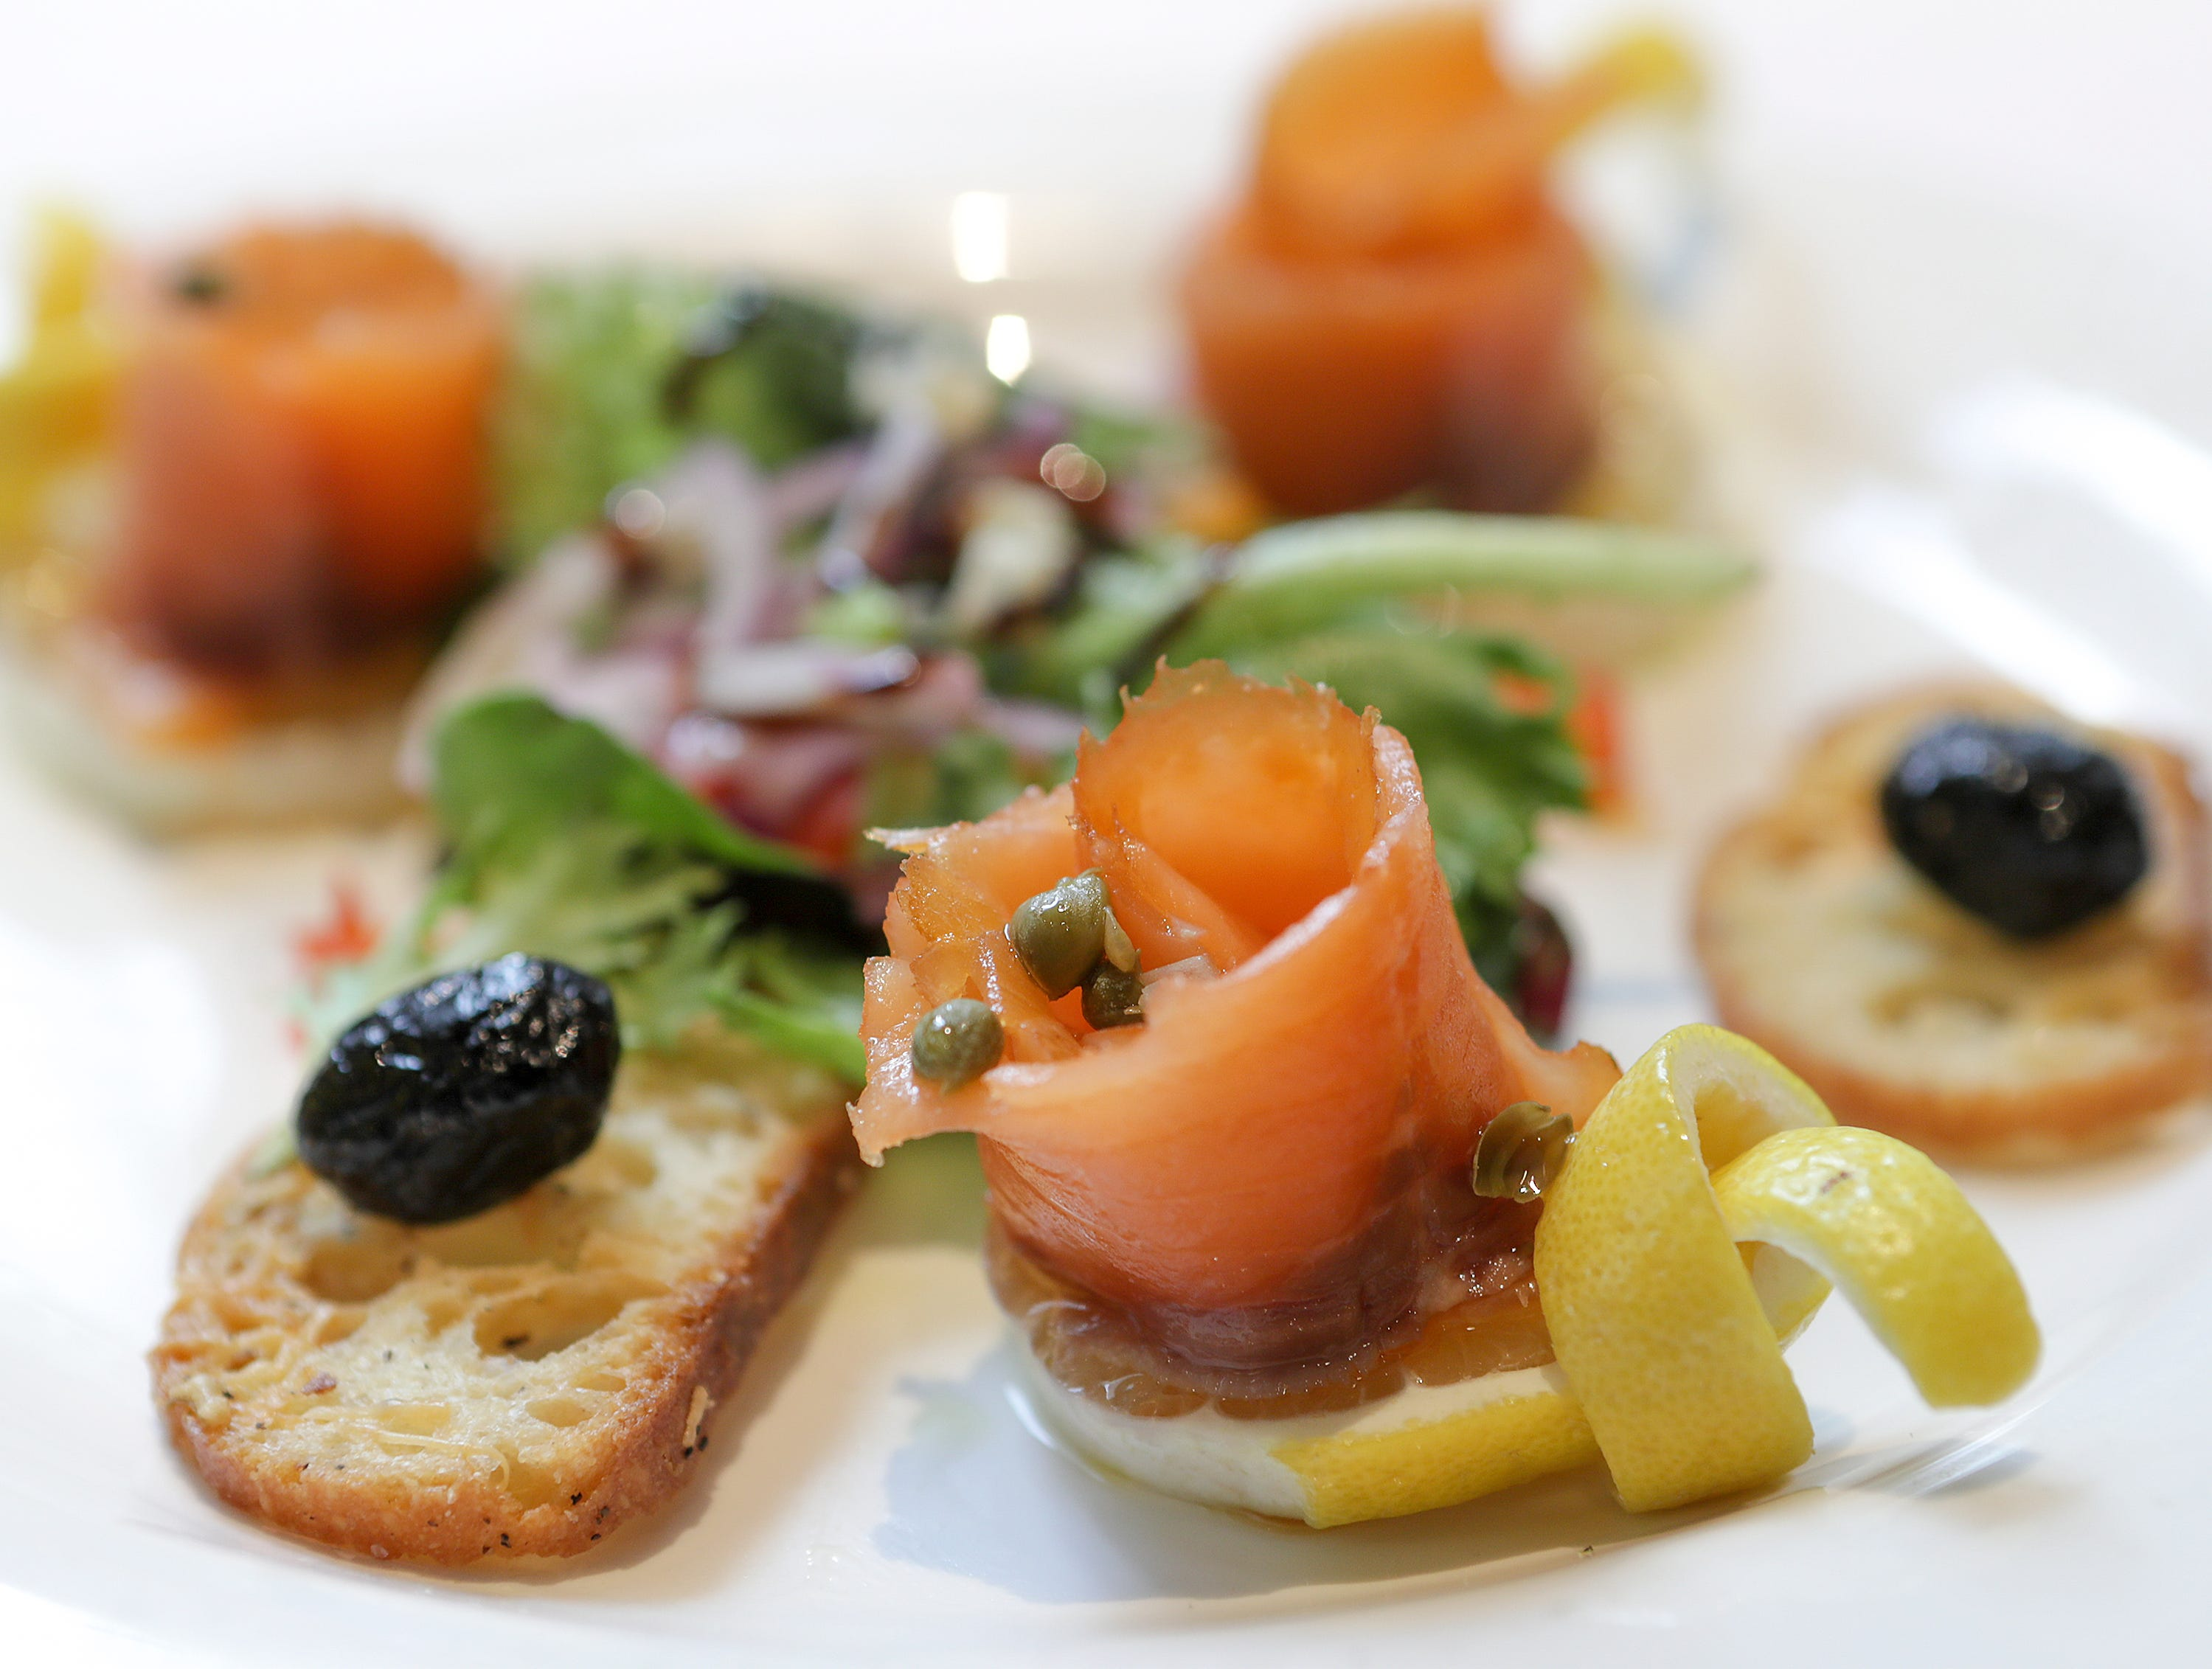 Smoked Salmon Con Capperi E Cipolline at Vincenzo'sSlices of smoked salmon garnished with capers, shallots, extra virgin olive oil and lemon.December 19, 2018